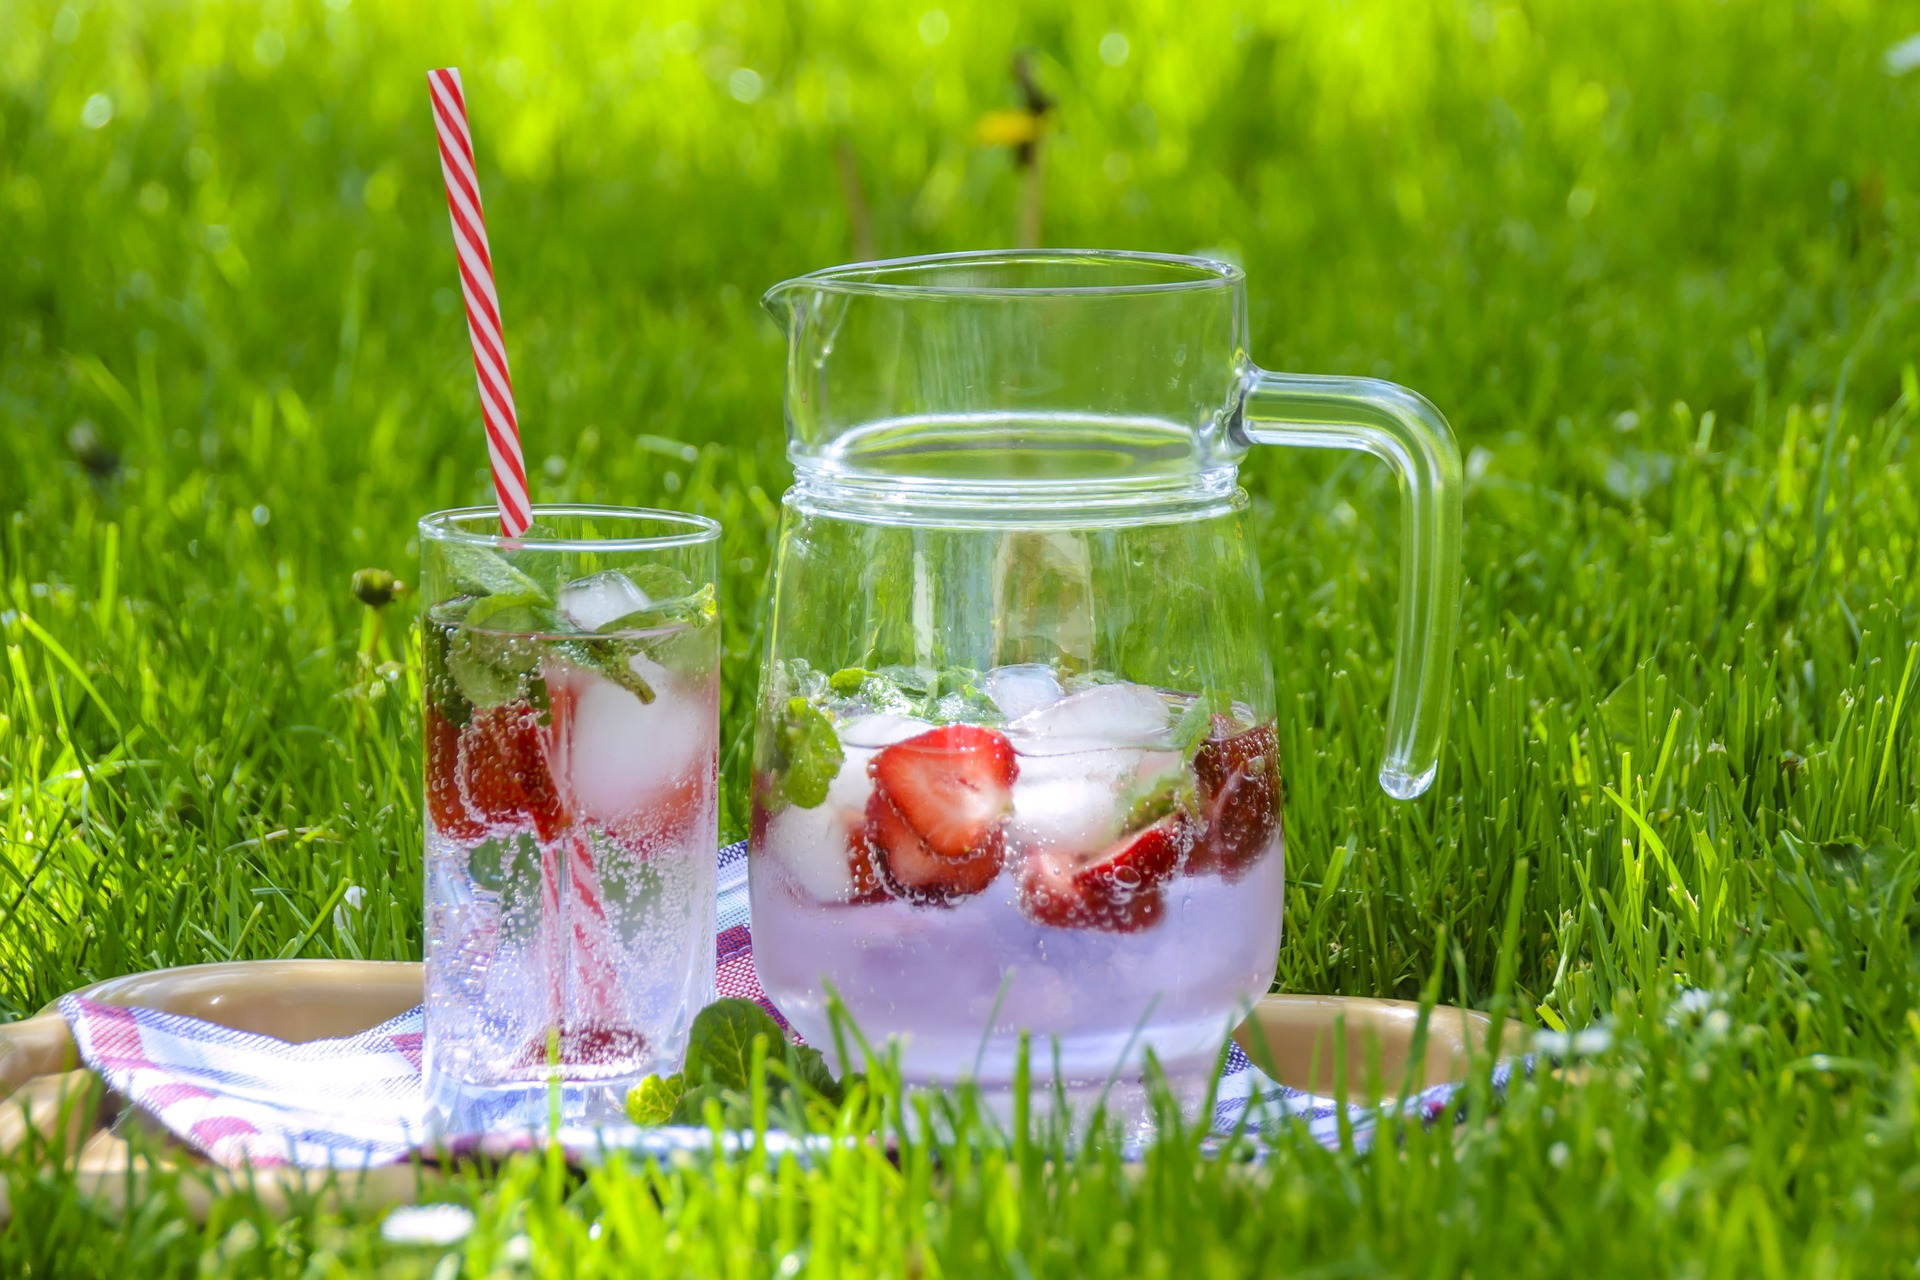 Foodie must-haves for your picnic this Summer